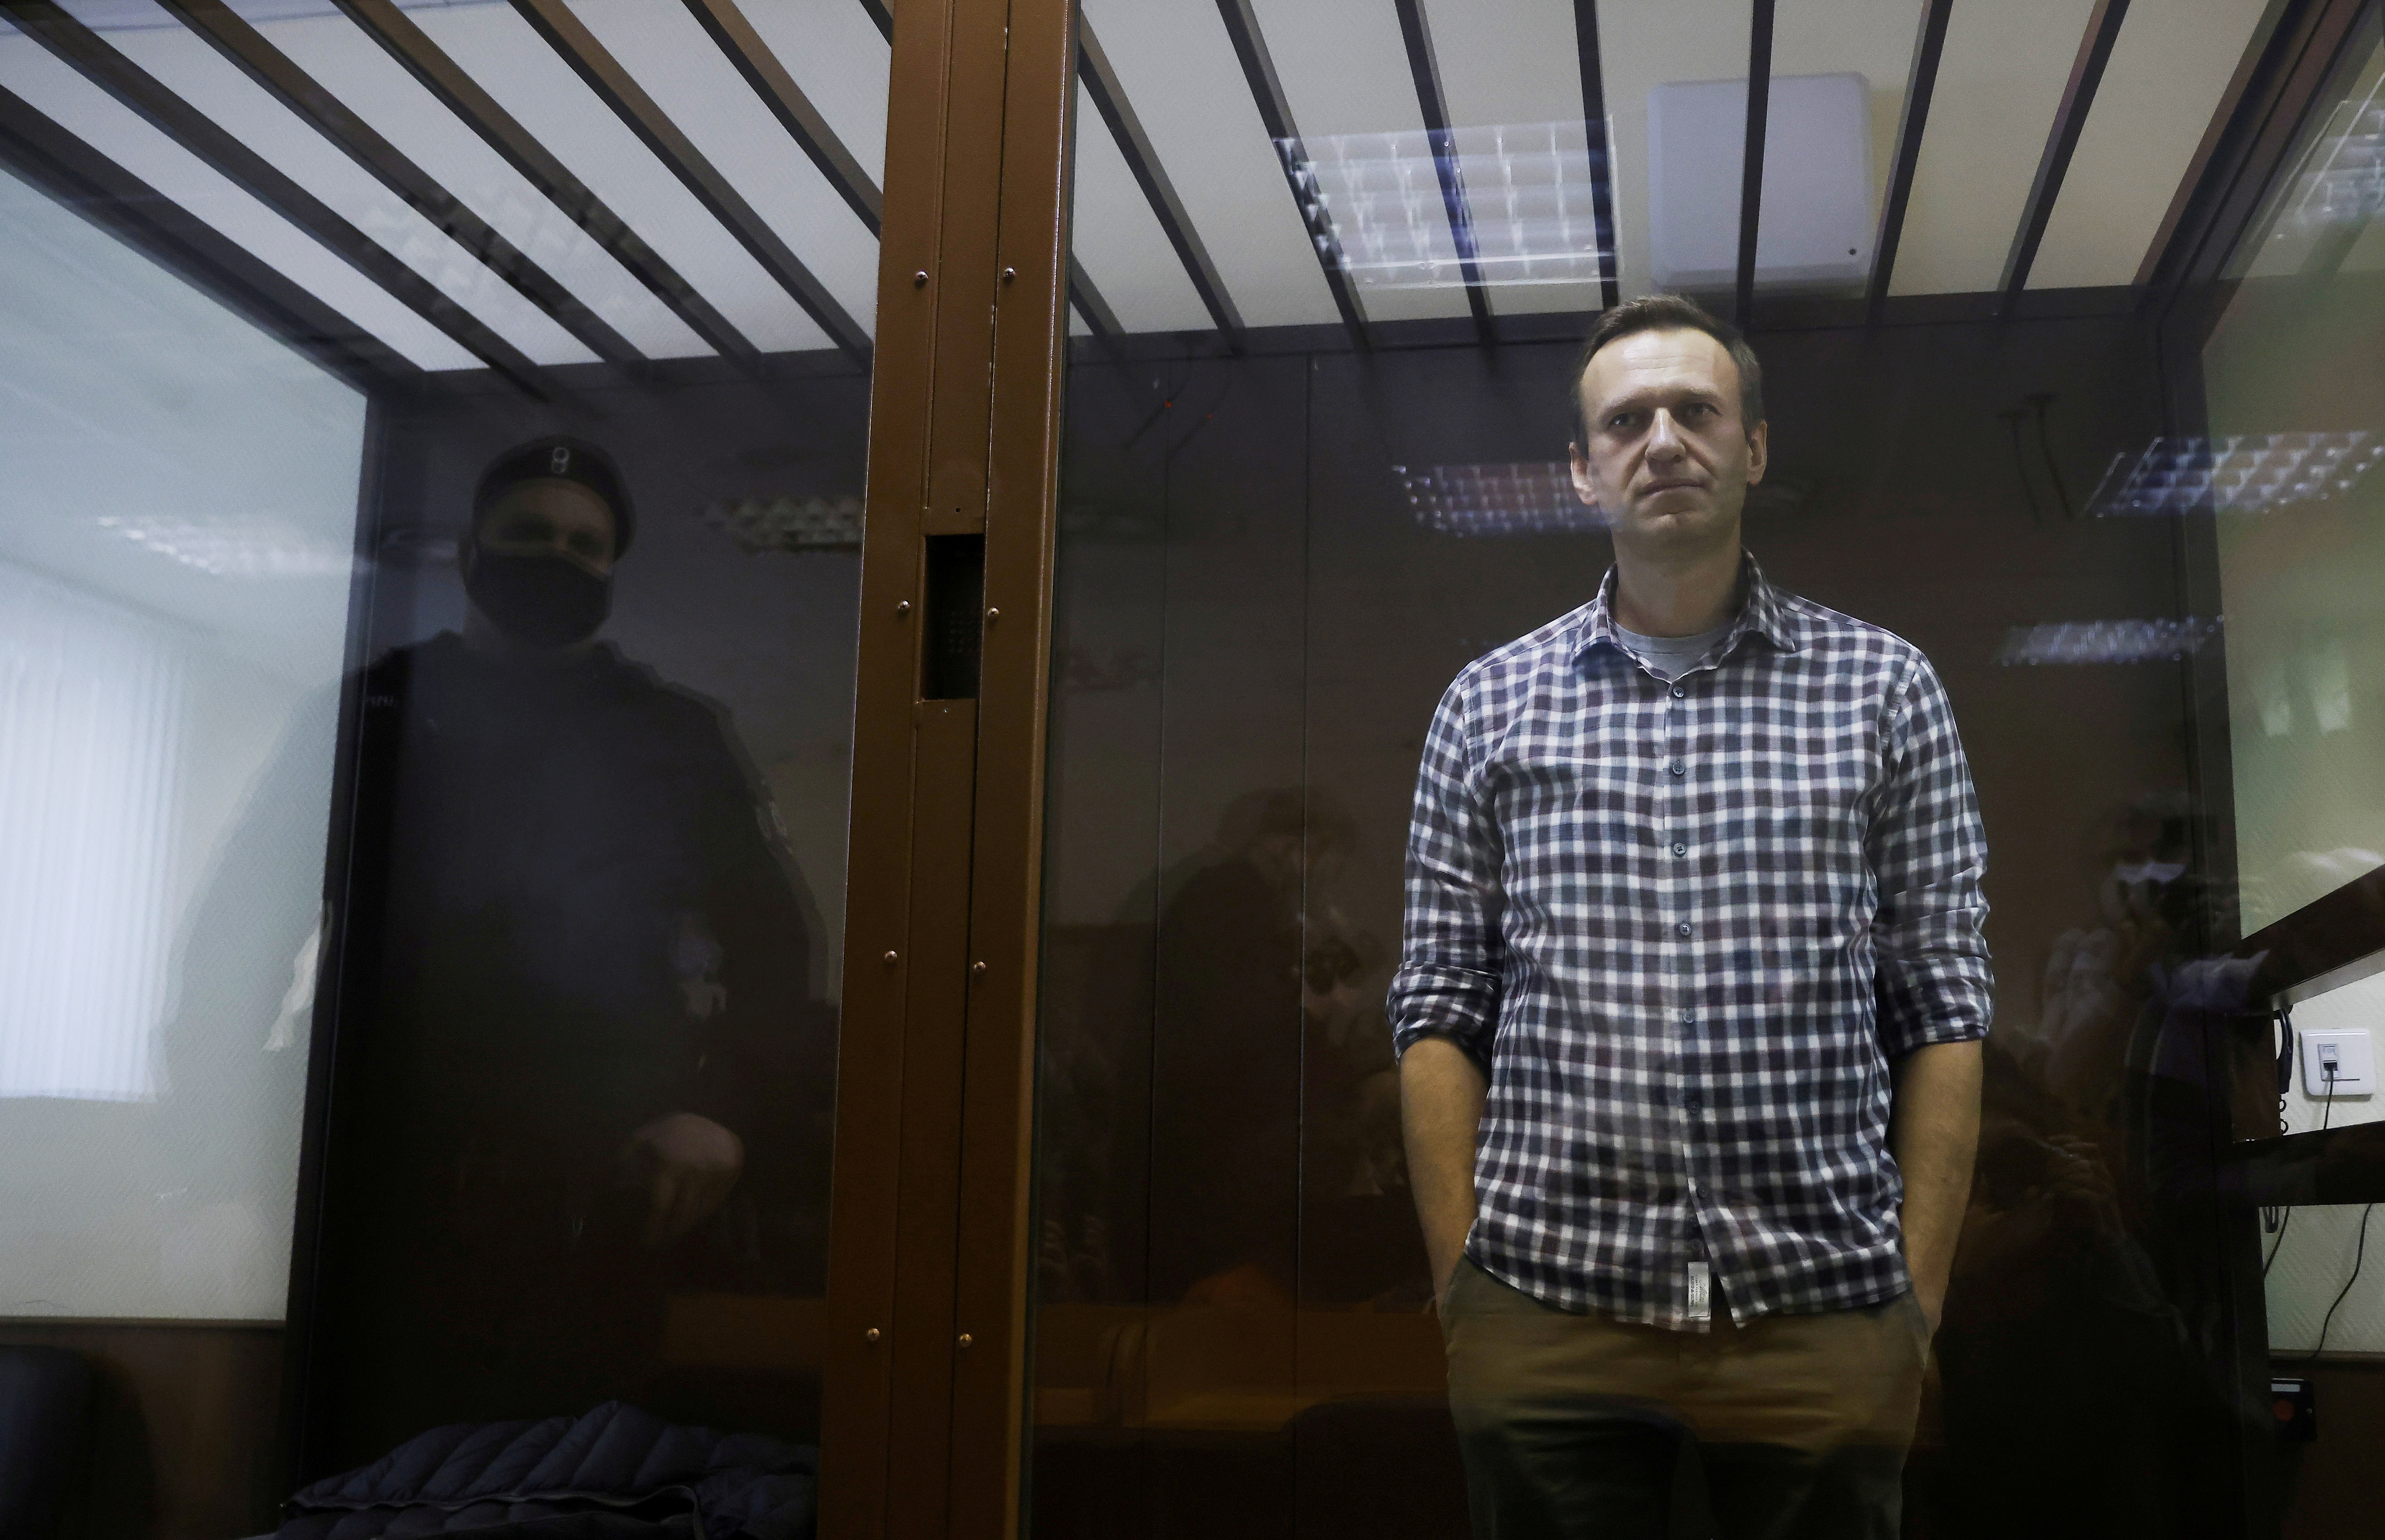 Russian opposition politician Alexei Navalny attends a hearing to consider an appeal against an earlier court decision to change his suspended sentence to a real prison term, in Moscow, Russia February 20, 2021. REUTERS/Maxim Shemetov